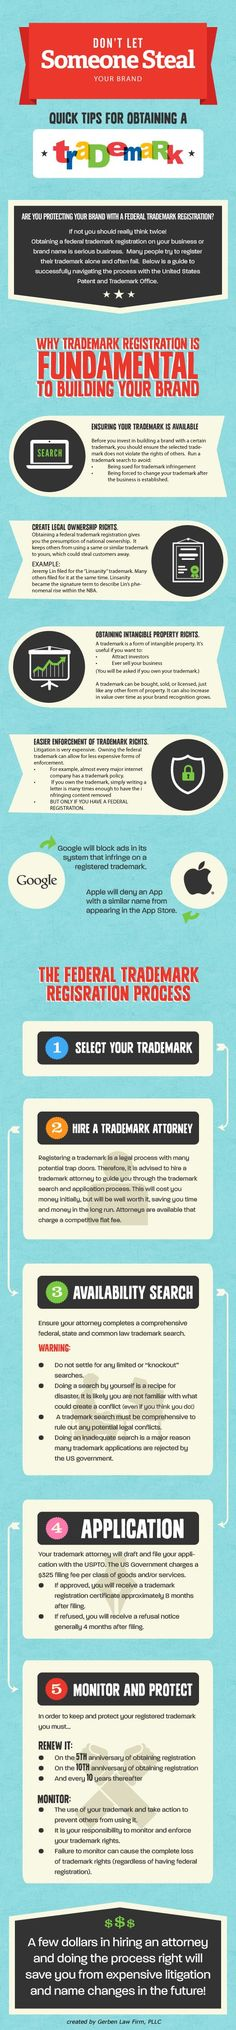 the importance of trademark